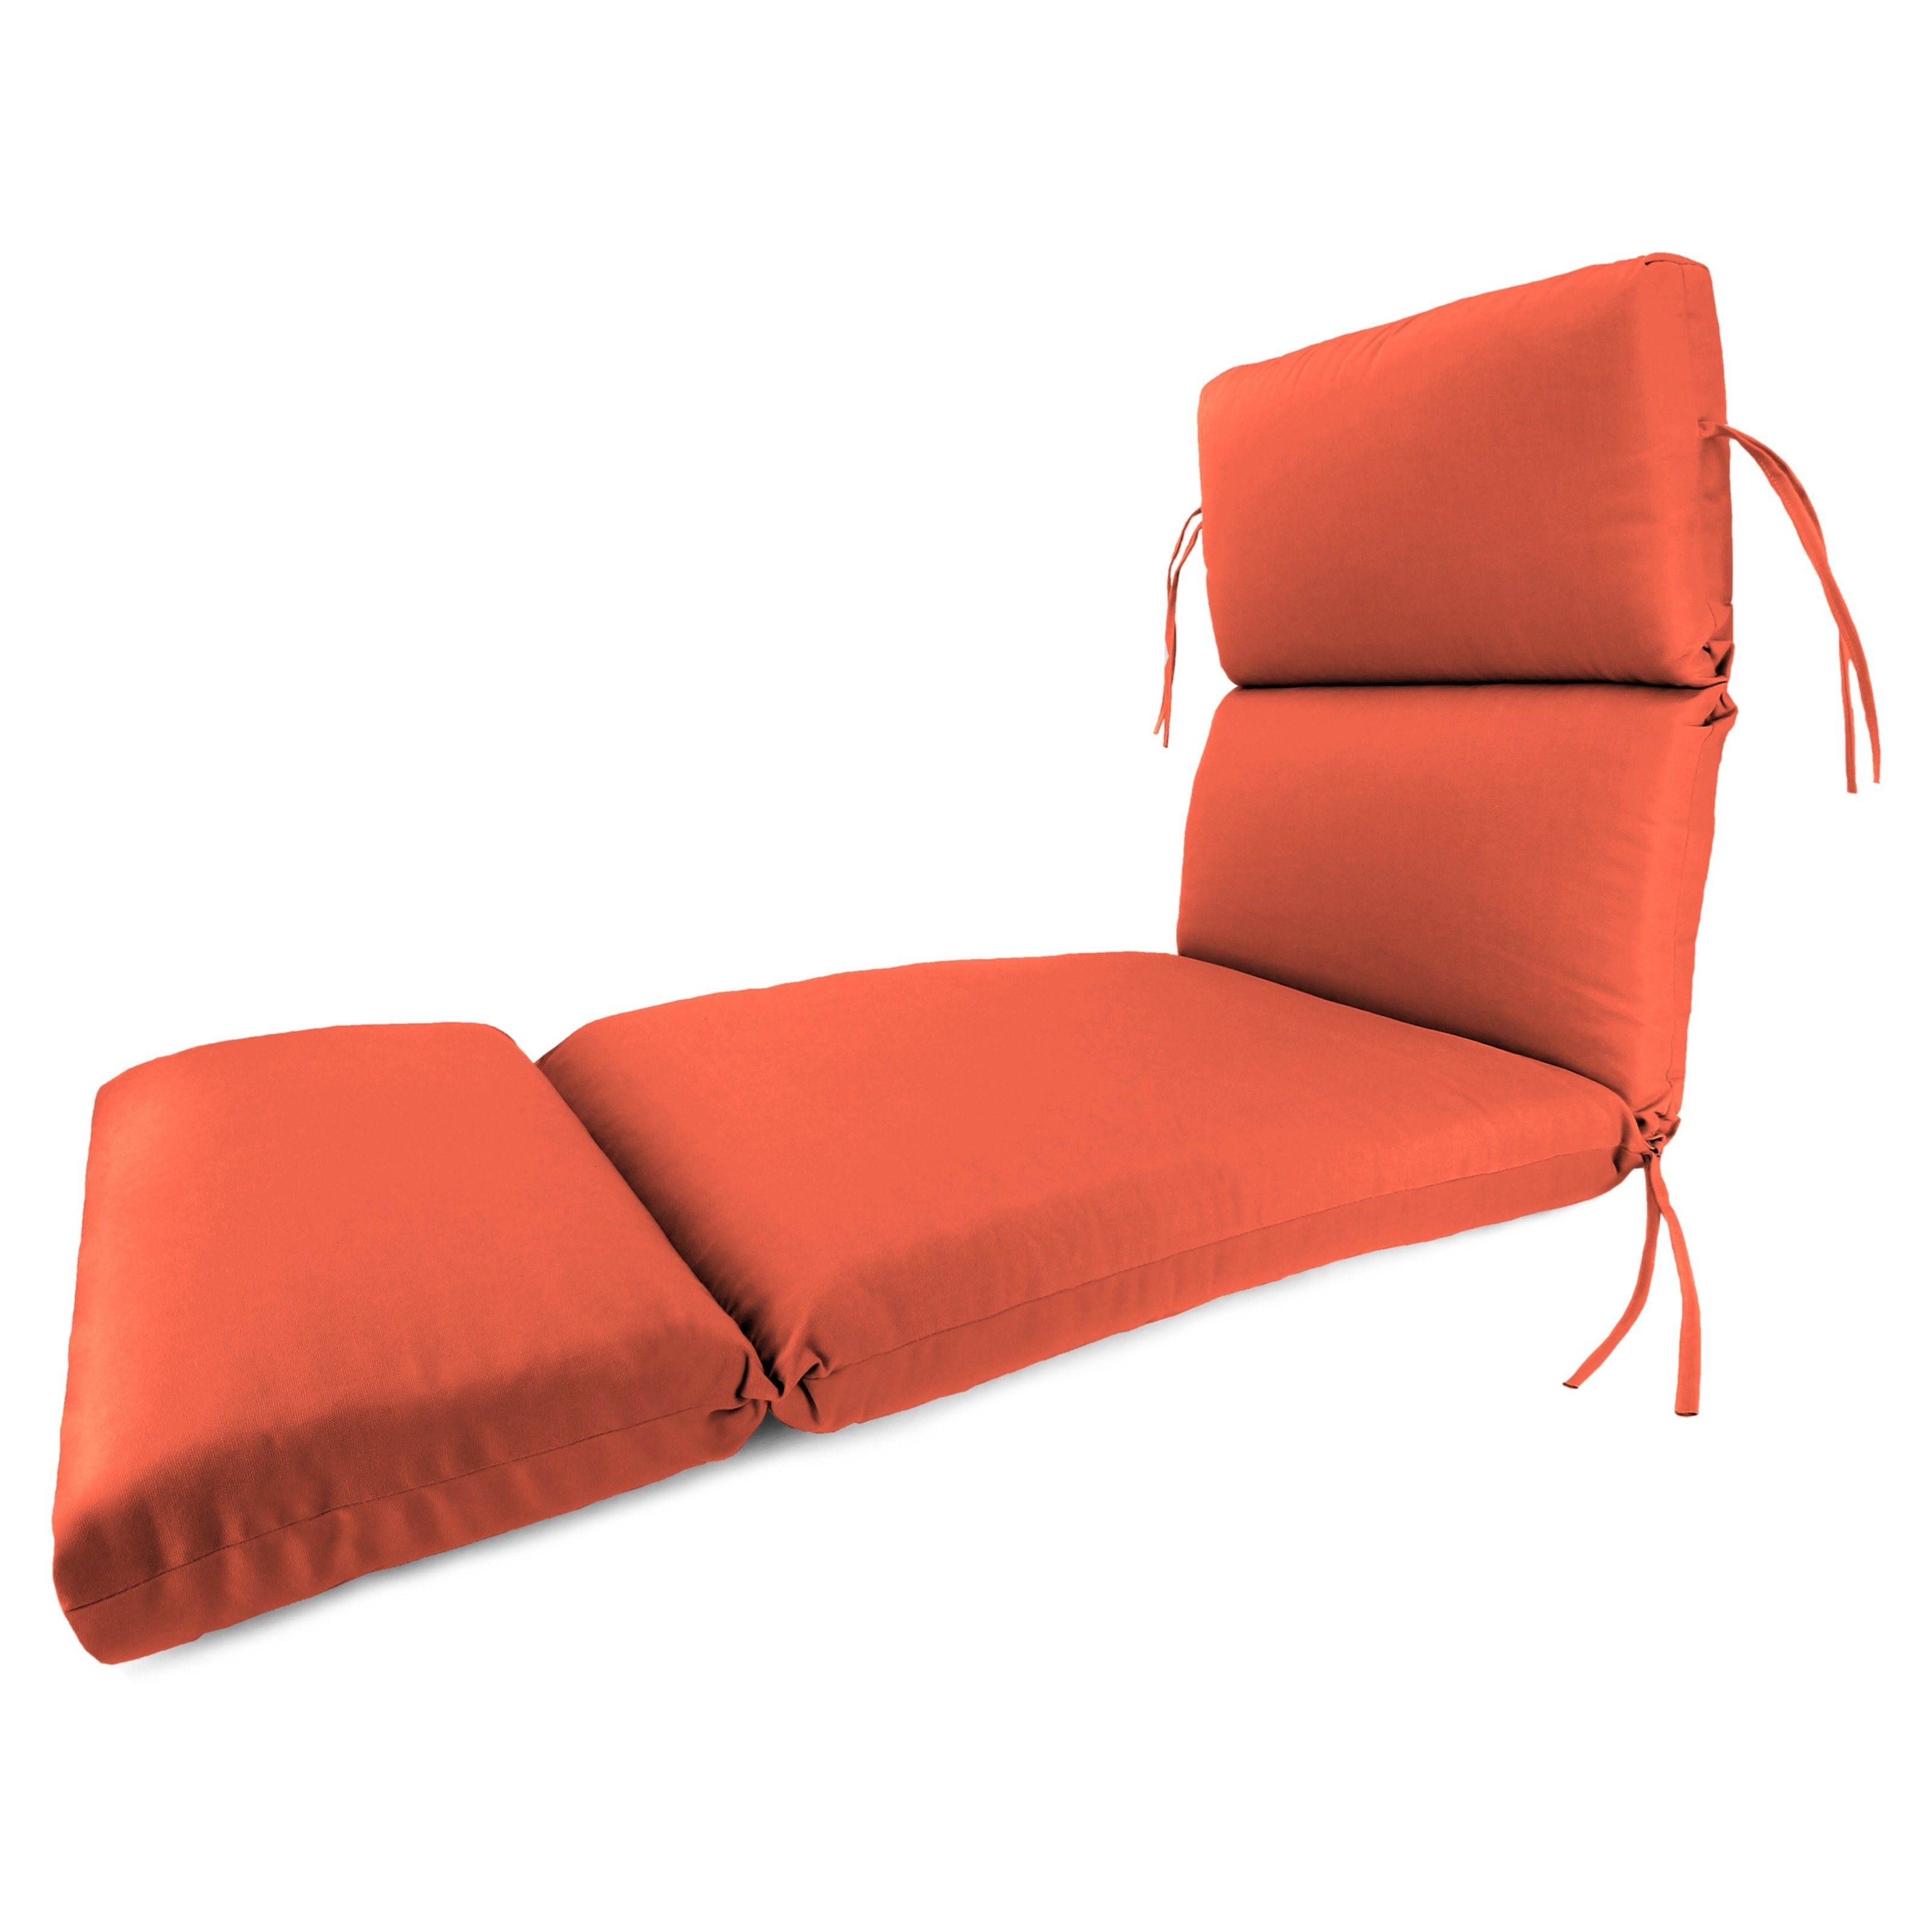 Orange Chaise Lounge Cushions Decoration (View 5 of 15)